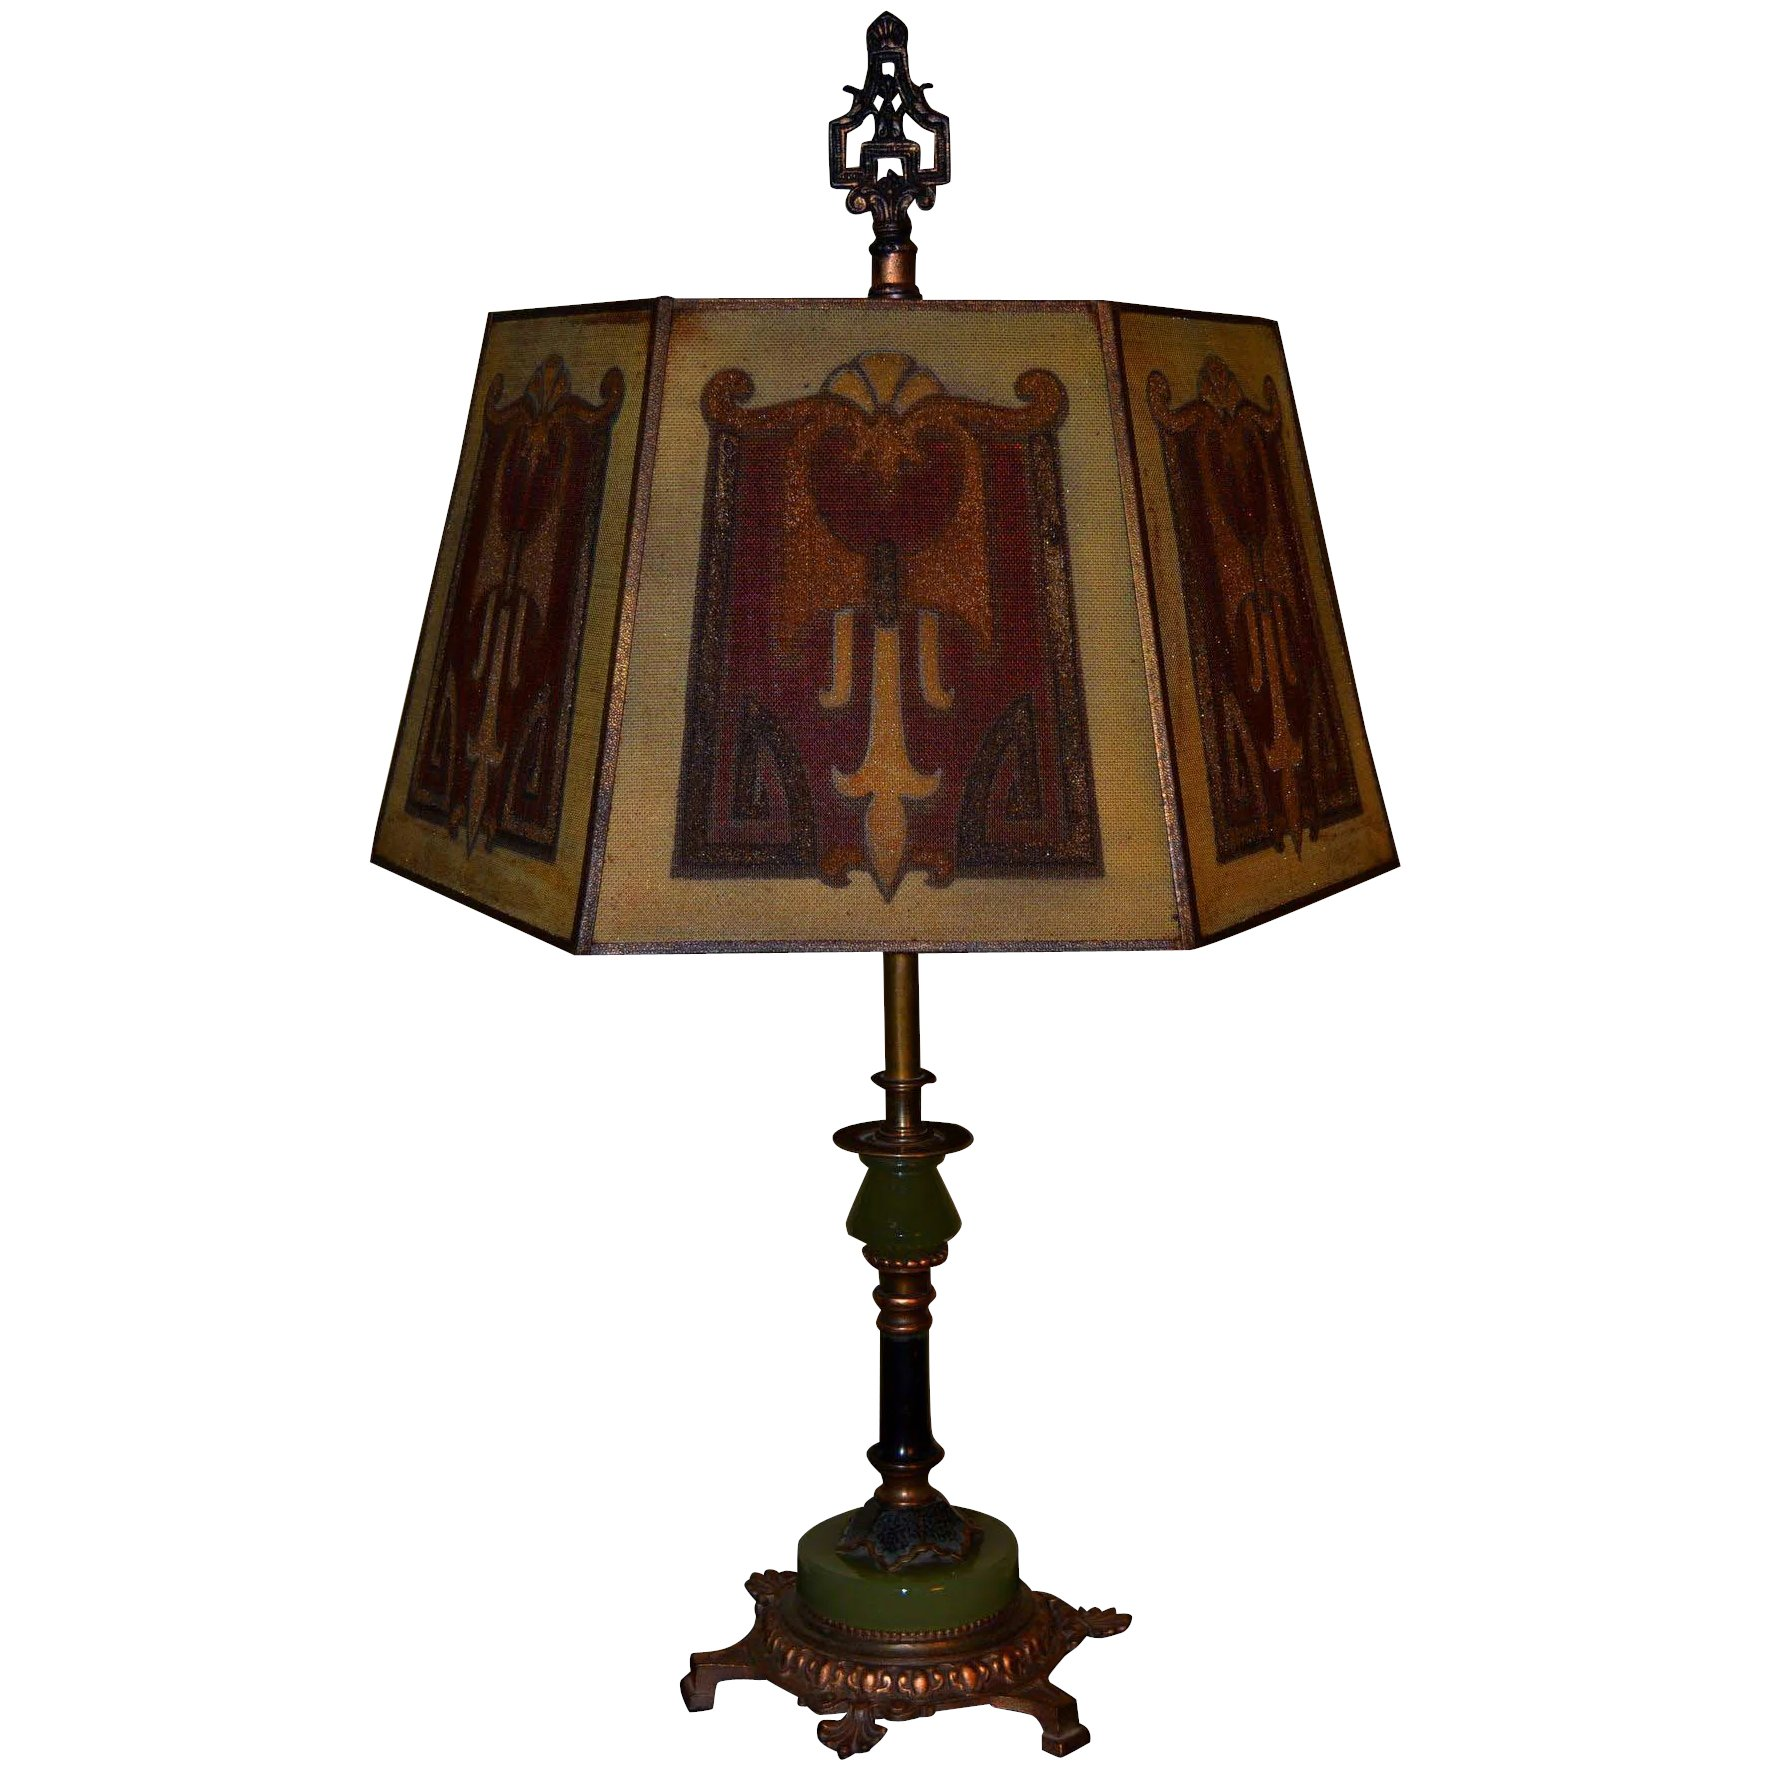 Signed Rembrandt Table Lamp With Period Mesh Screen Shade Vintage Lamps And Lighting Ruby Lane